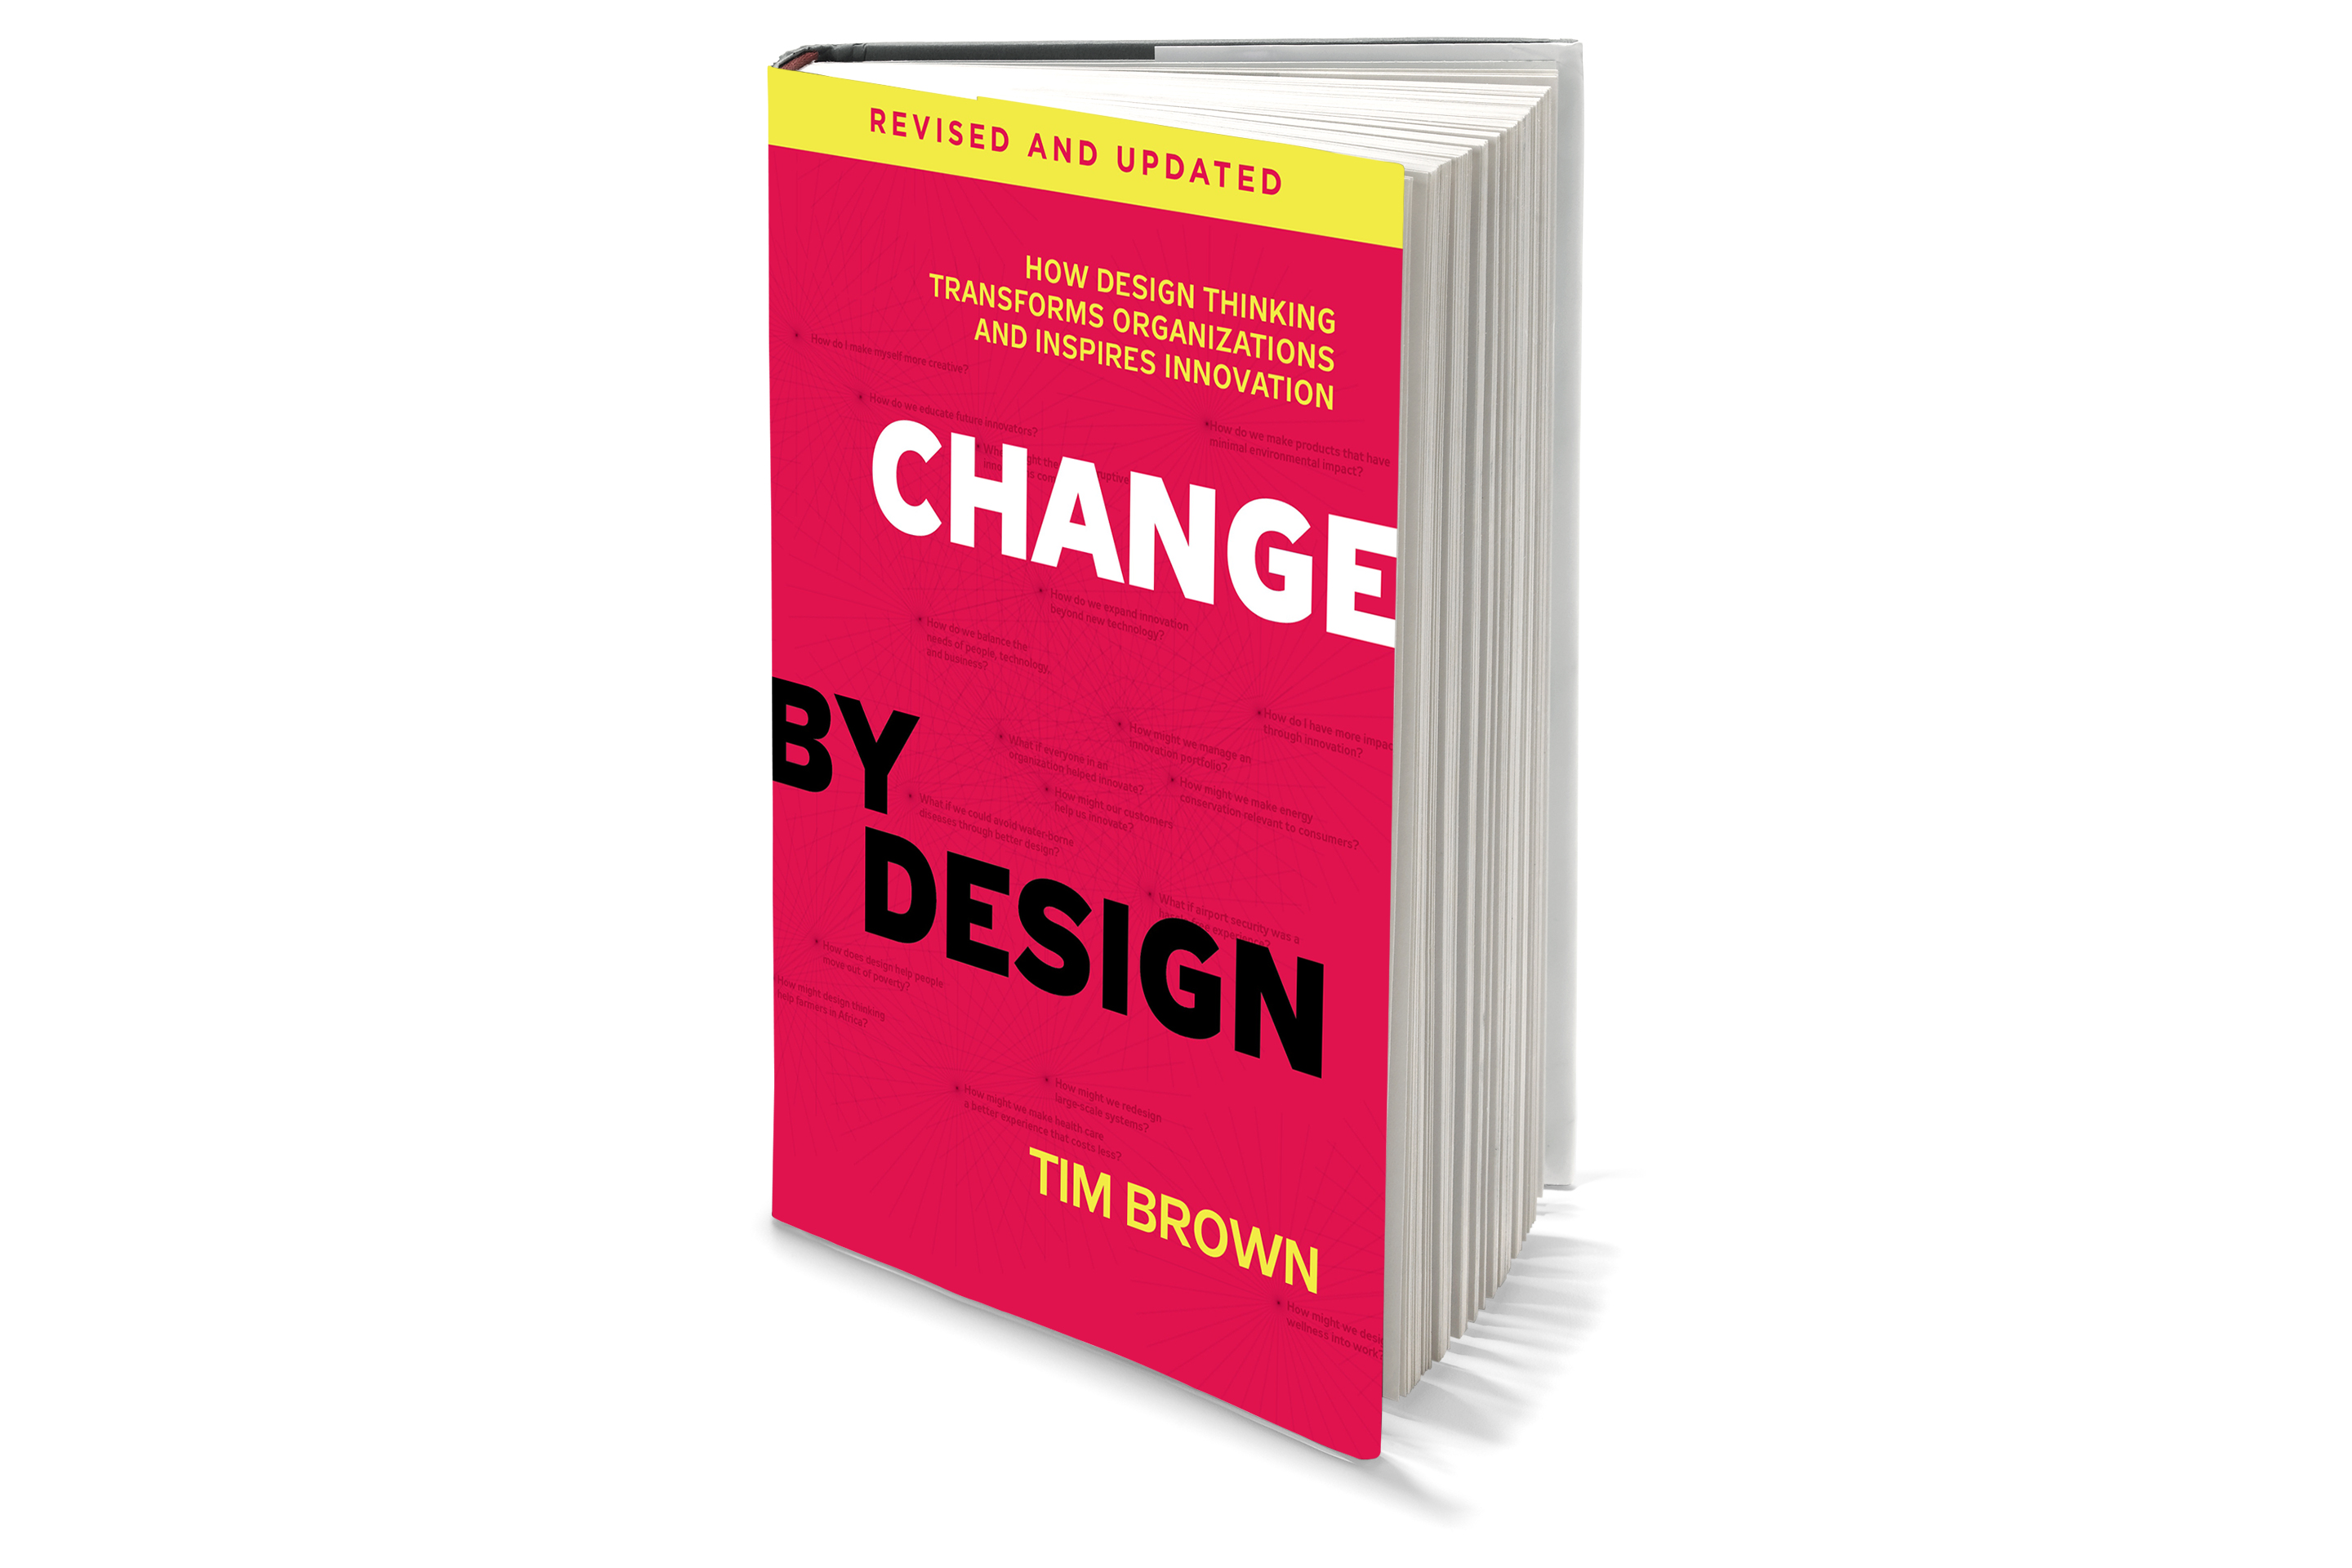 Change by Design 10 Years Later: Design Thinking Gets an Update